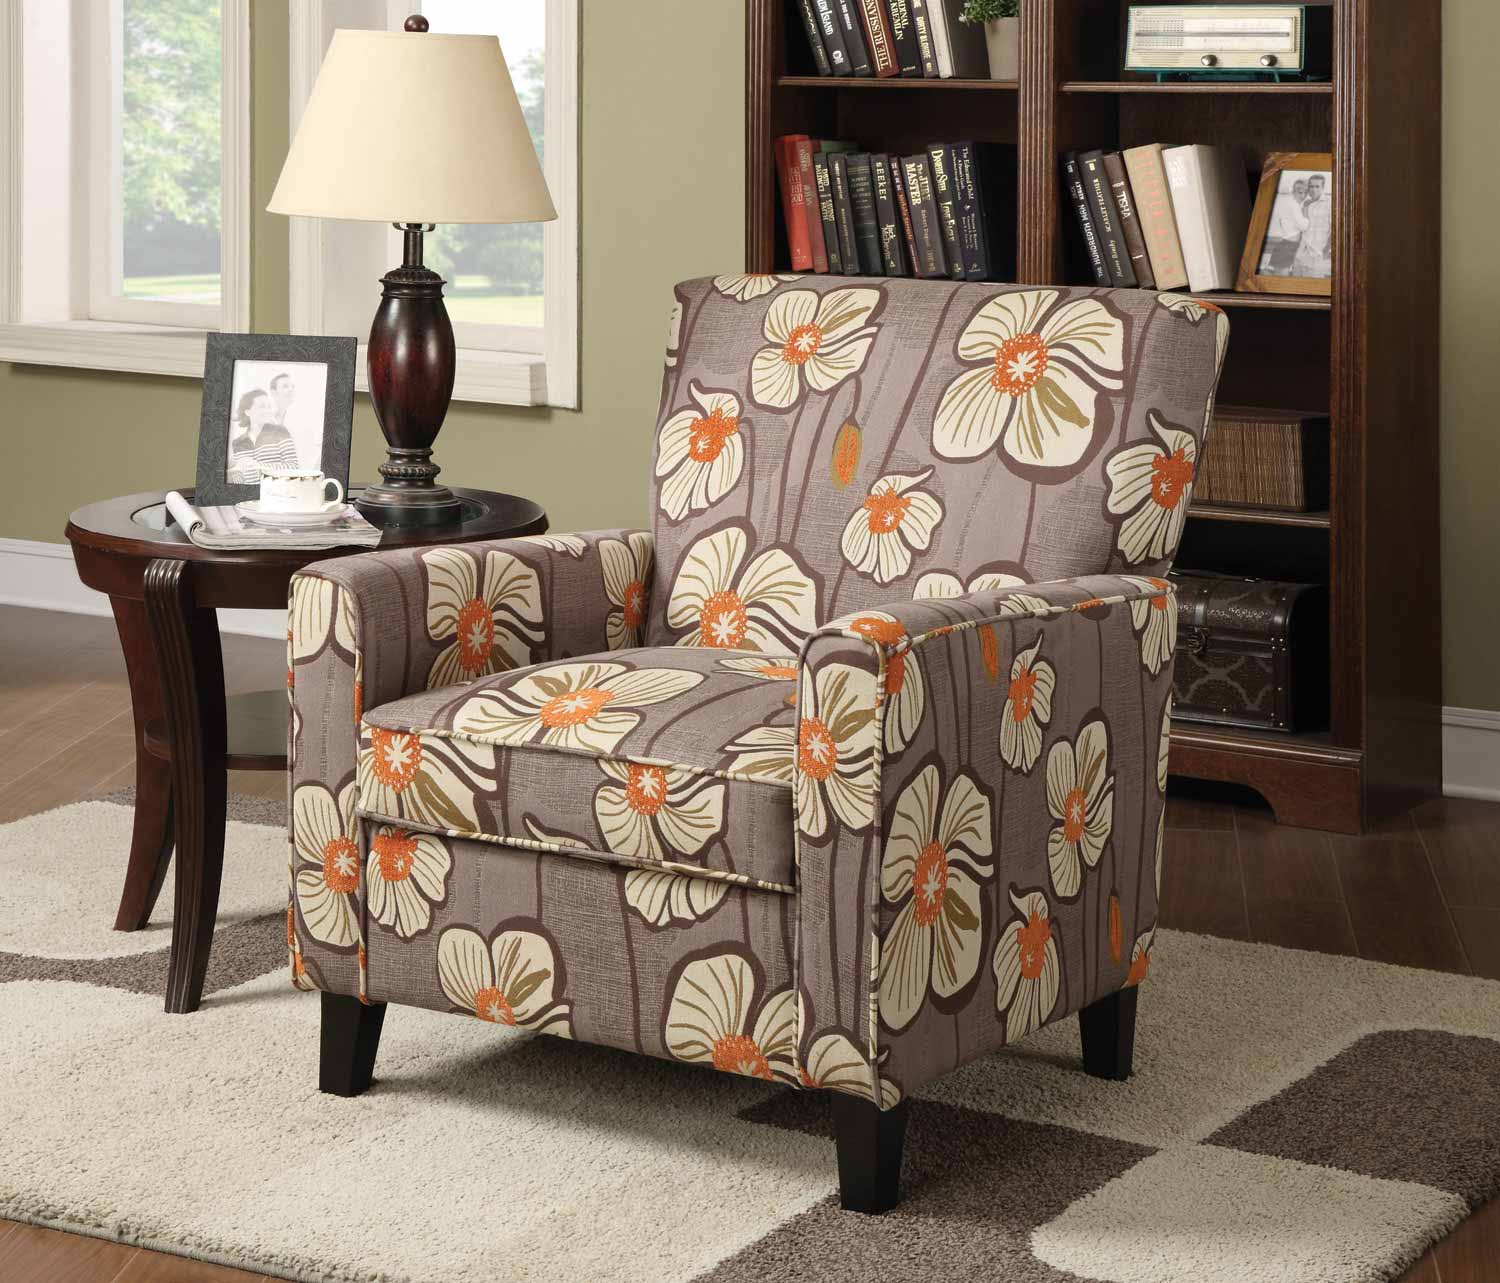 Coaster 902031 Accent Chair